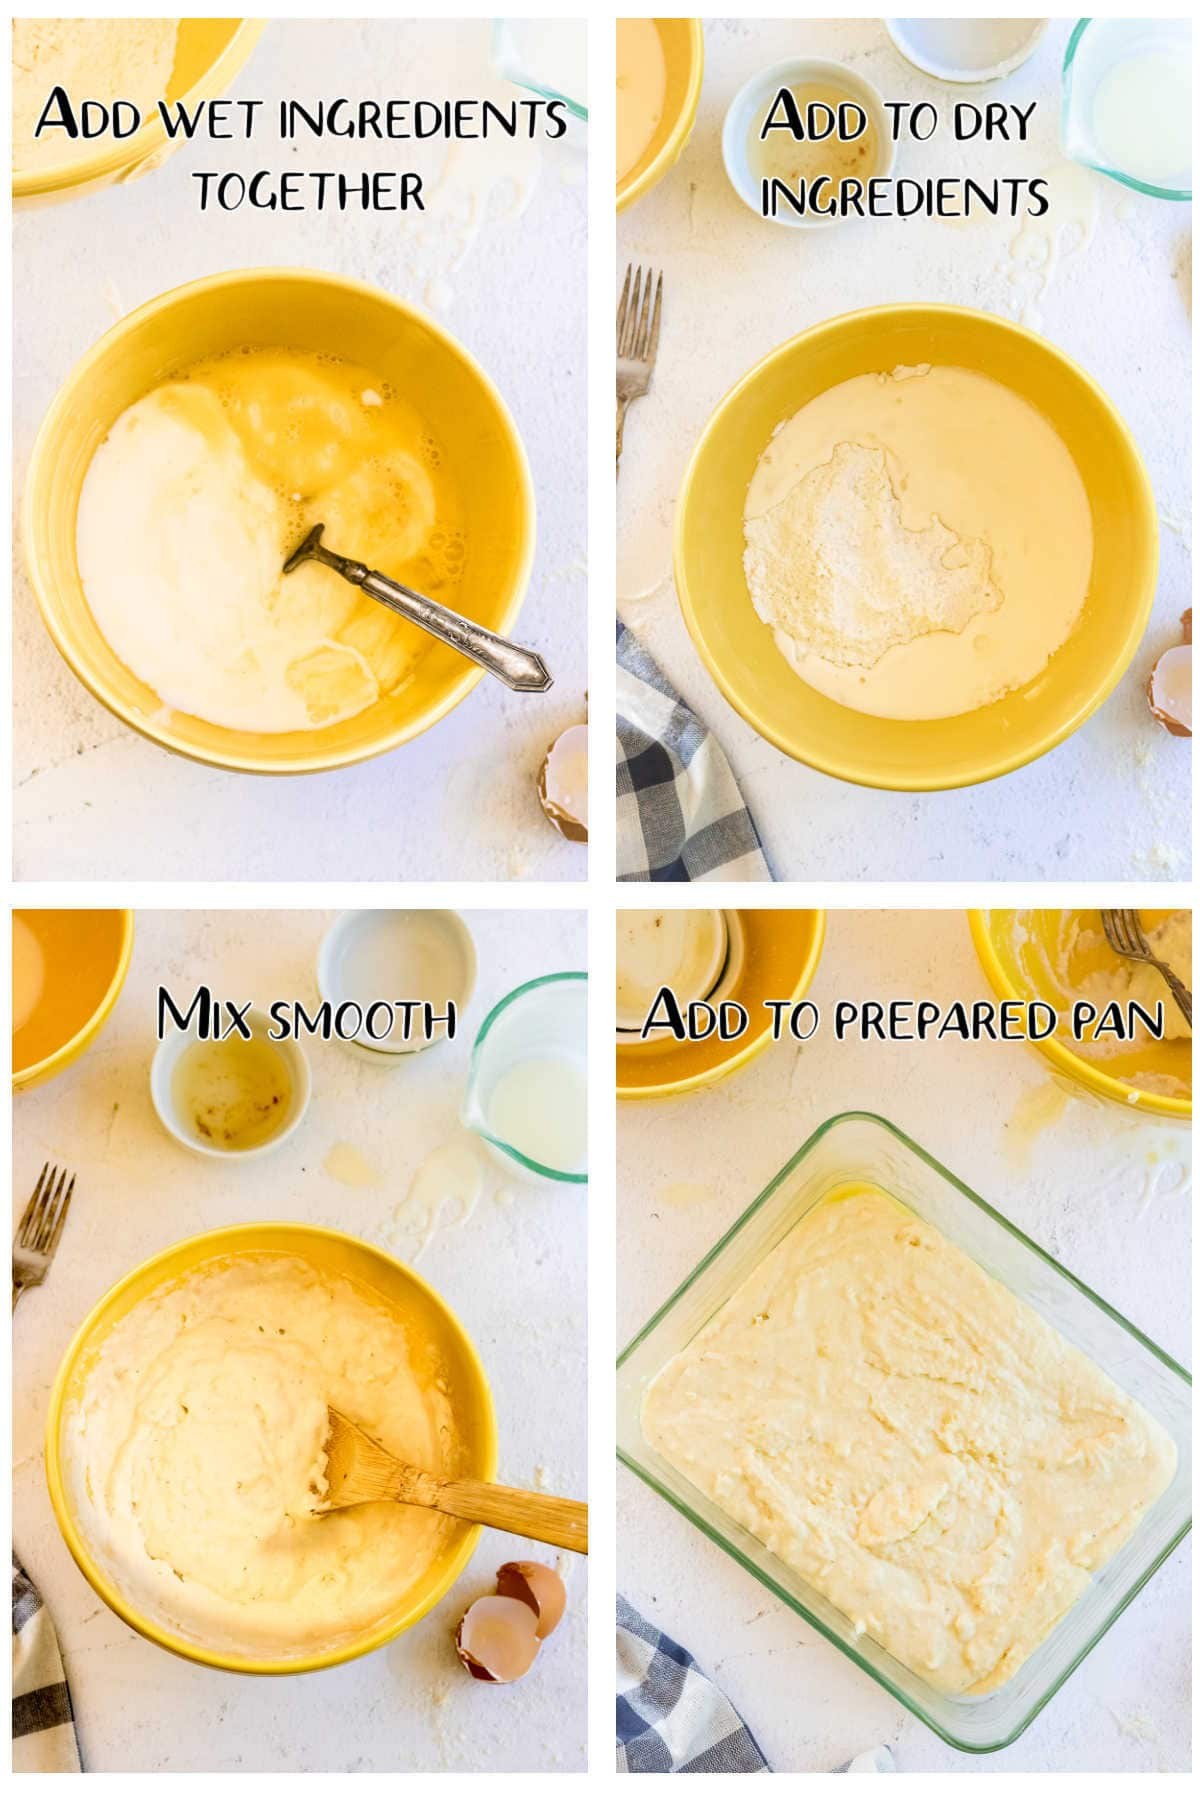 Step by step images for making cornbread.